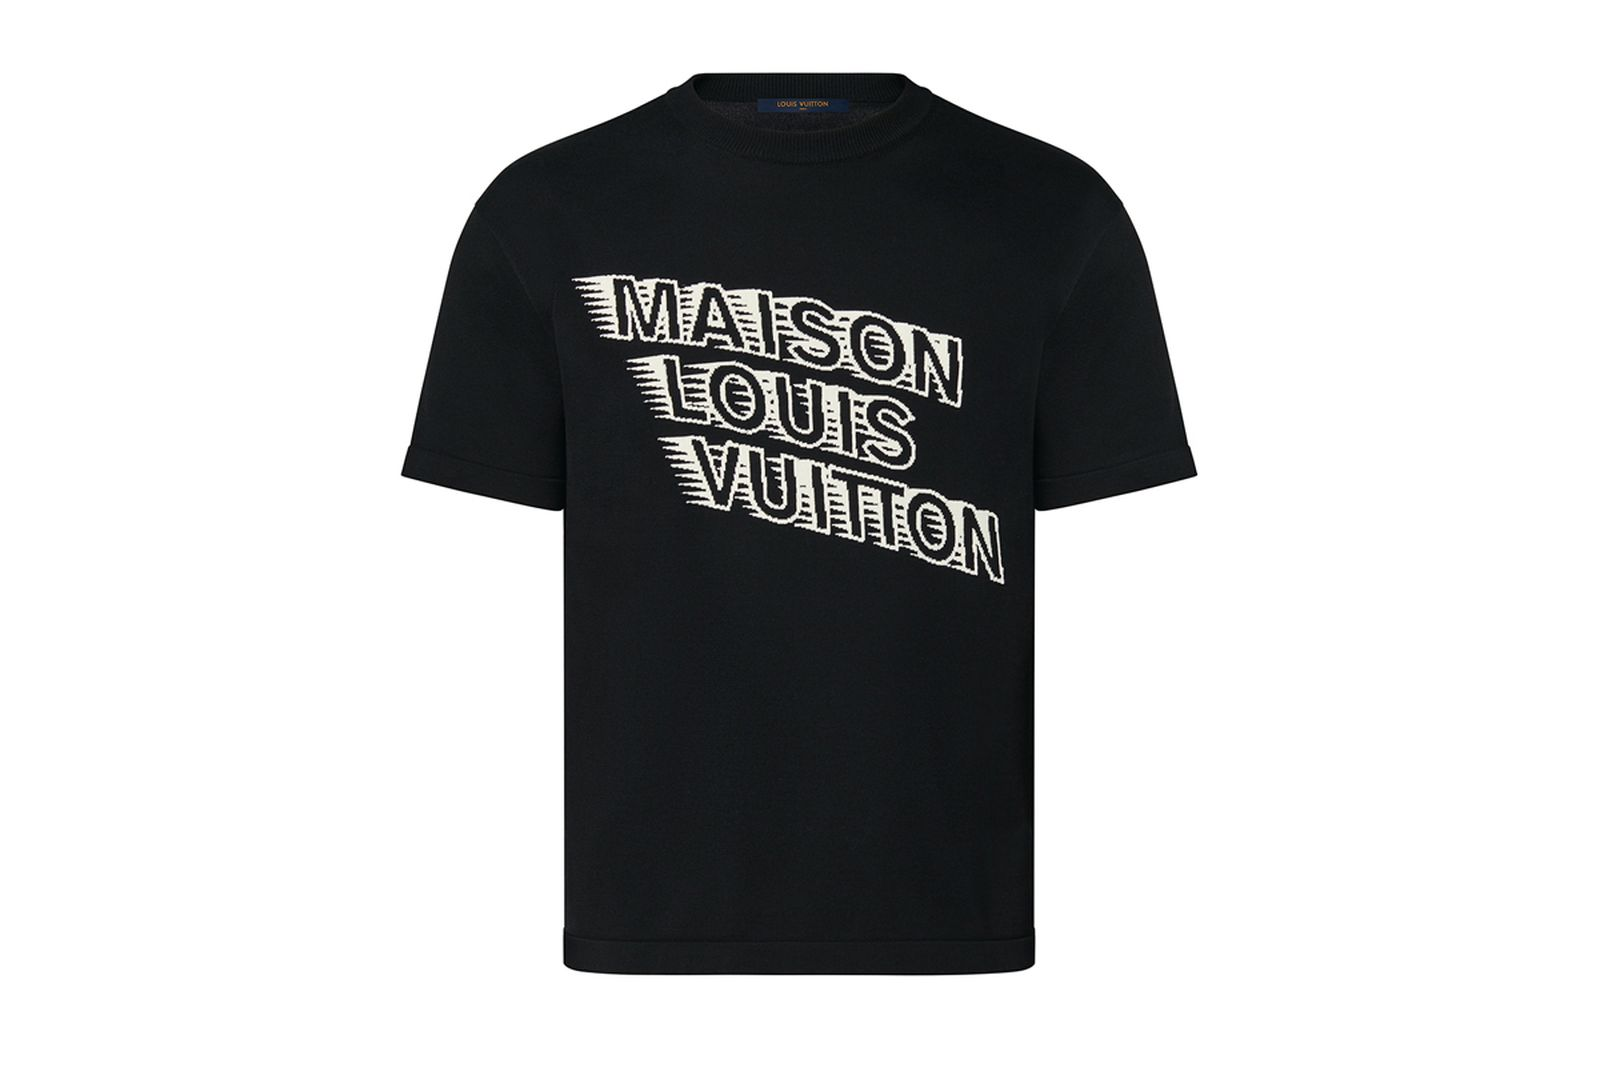 louis vuitton fall 2021 collection campaign product (16)